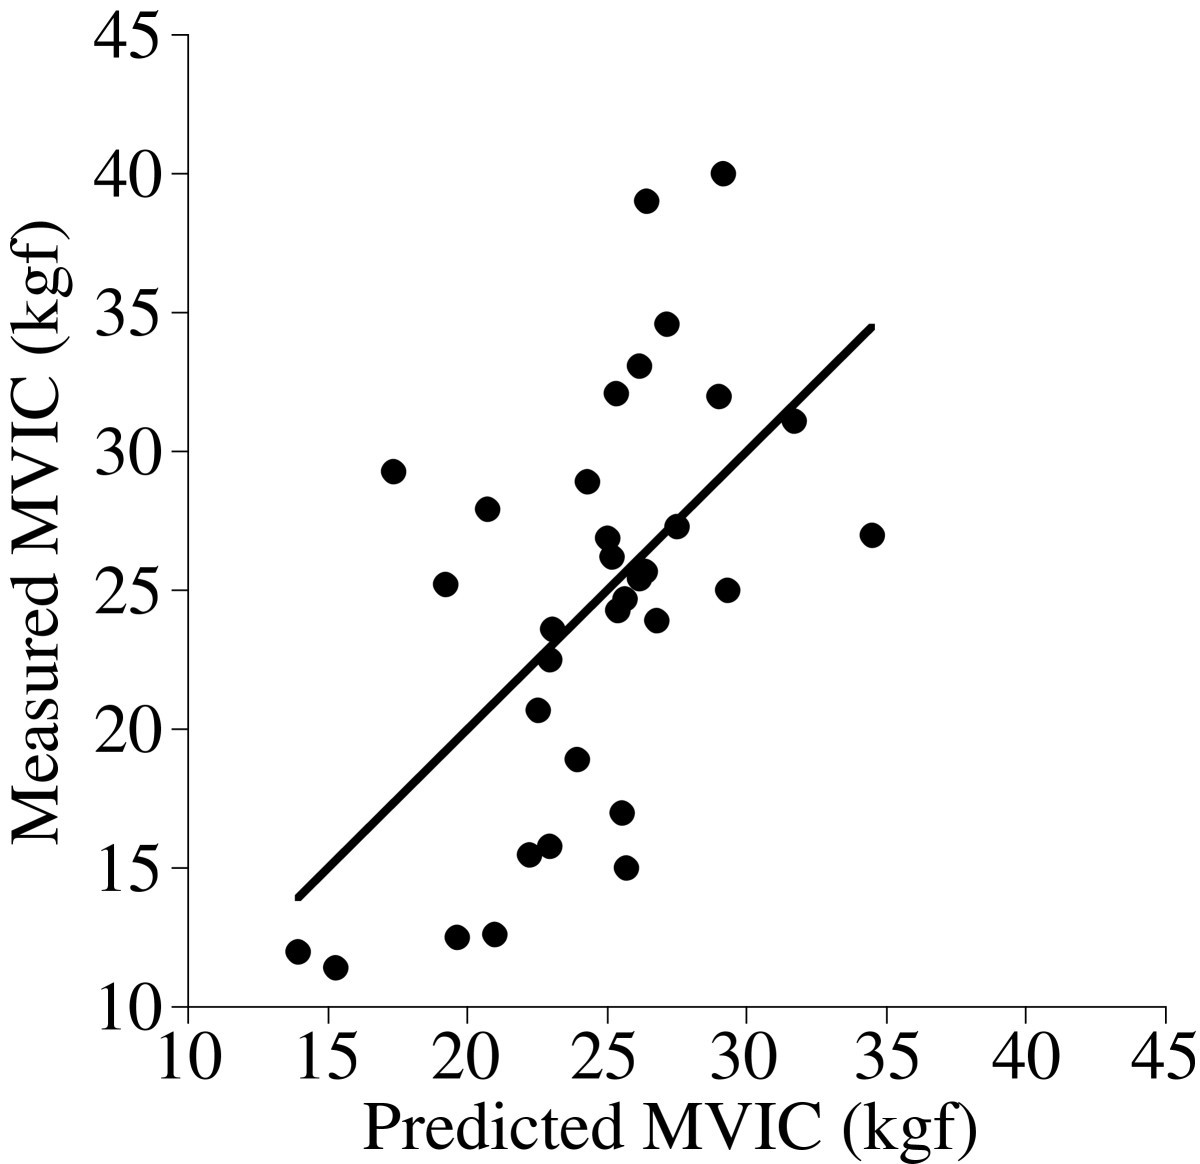 prediction of the muscle strength by the muscle thickness and hardness using ultrasound muscle